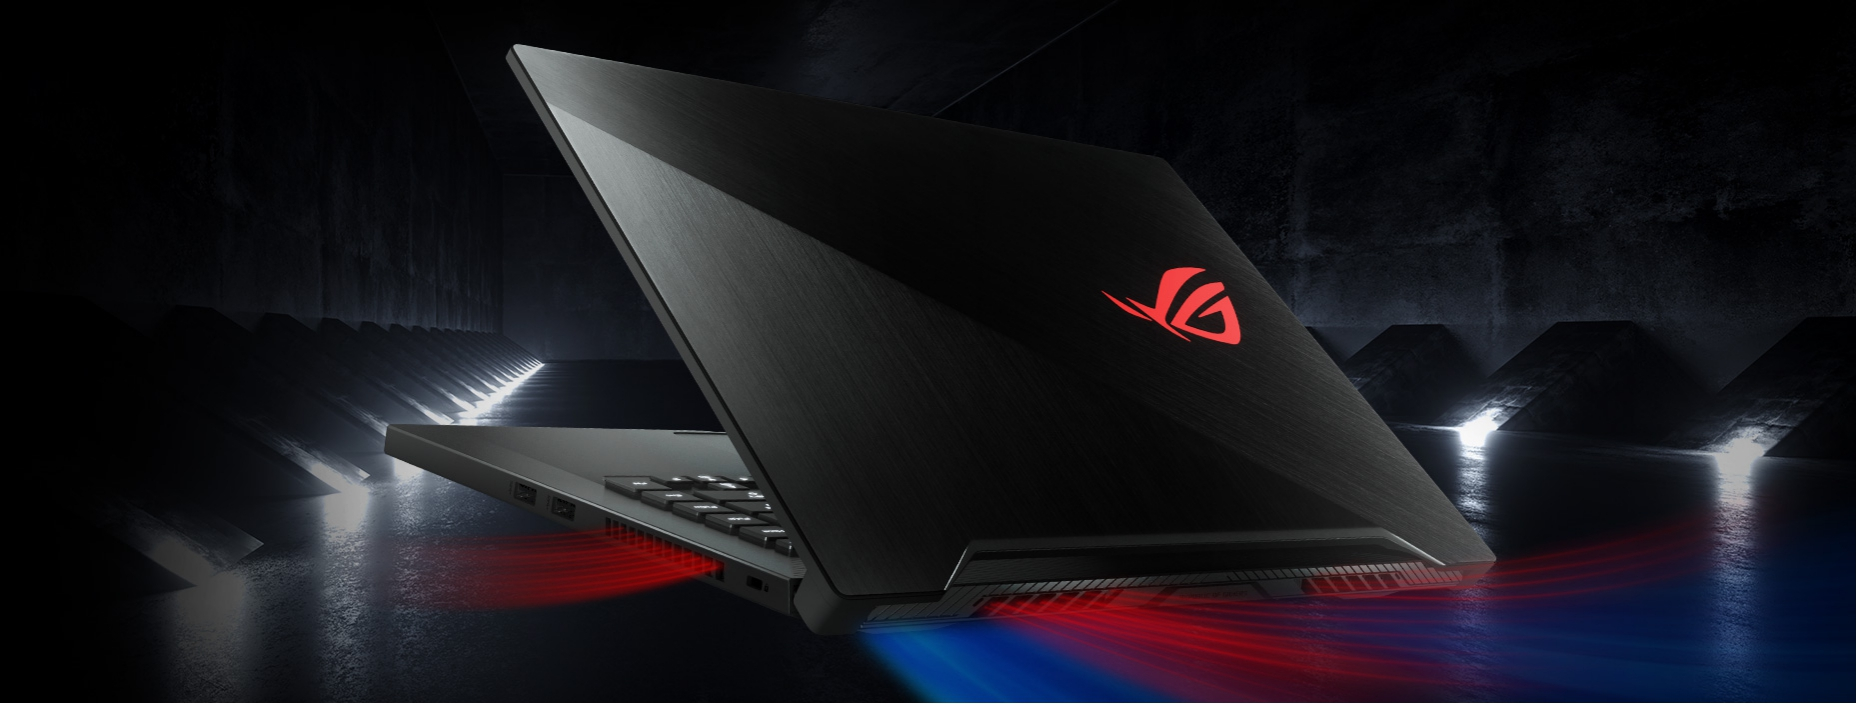 review asus rog g ga502 performa